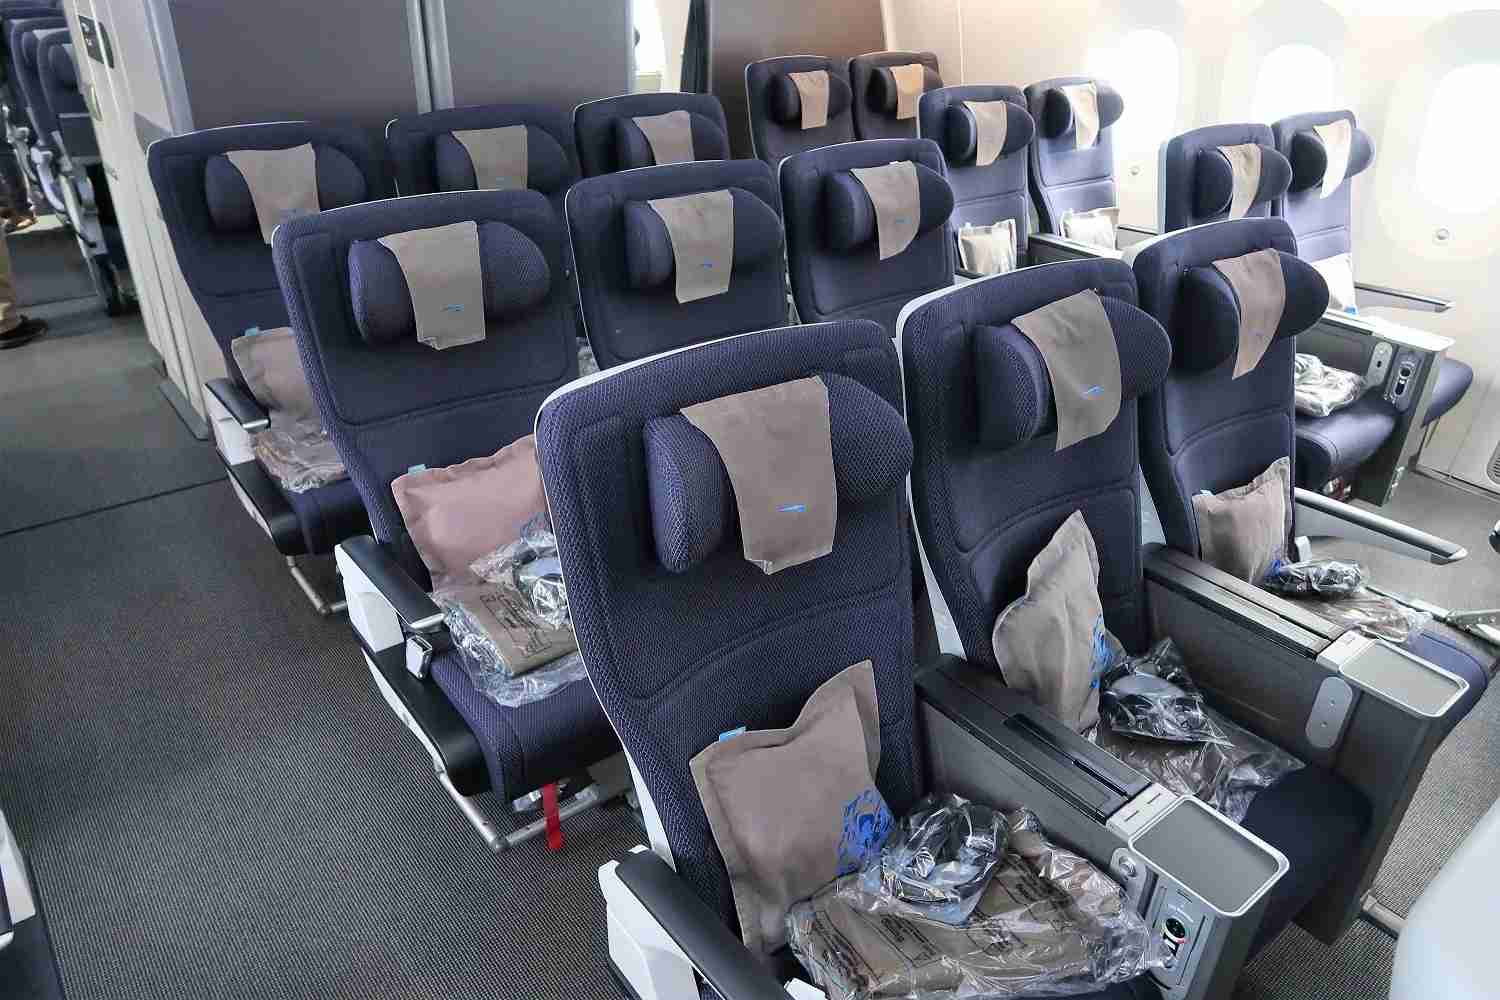 British Airways Premium Economy on the Boeing 787-9. Image by JT Genter / The Points Guy.